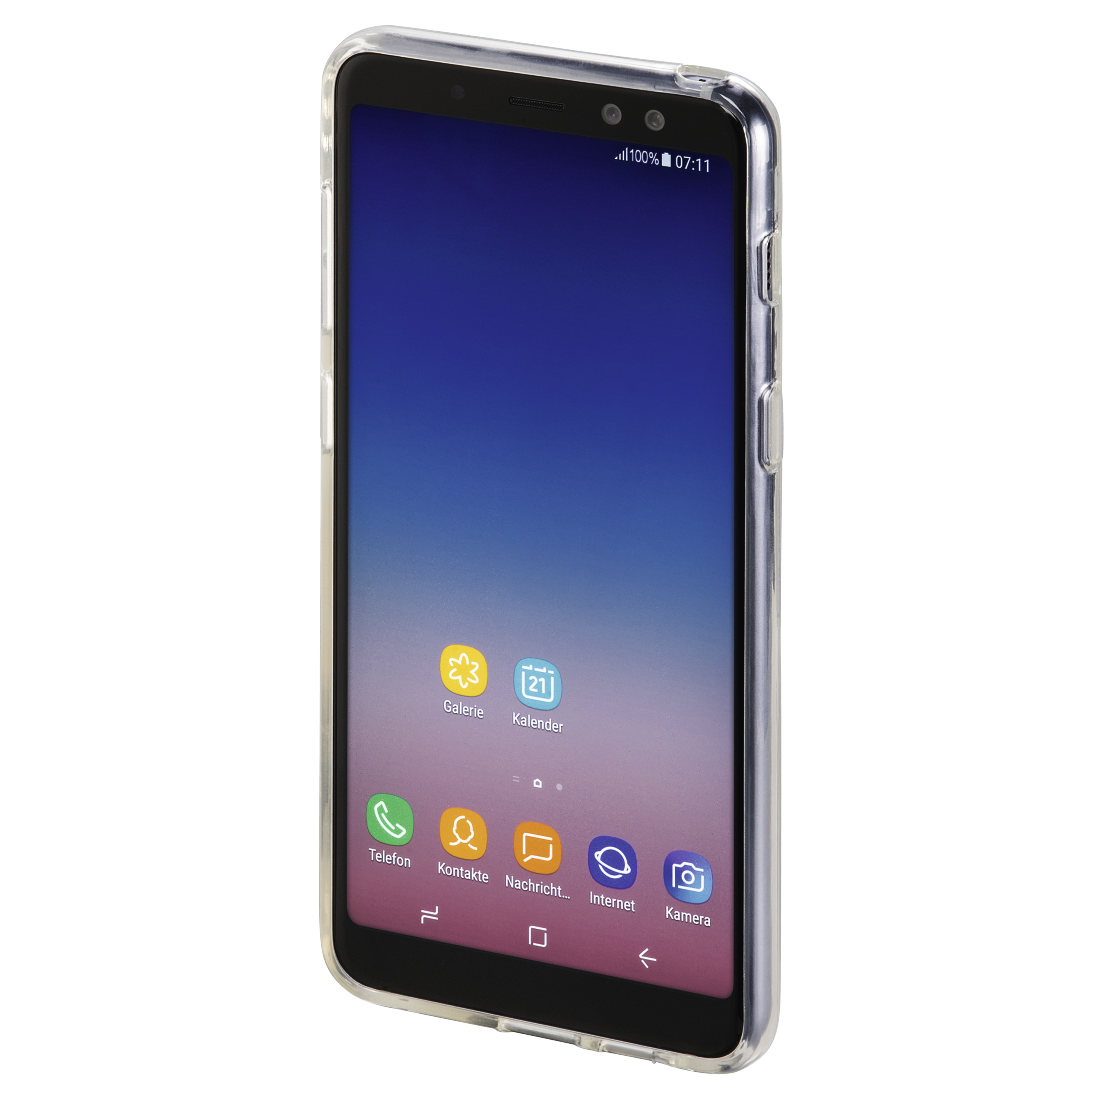 abx3 High-Res Image 3 - Hama, Coque de protection pour Samsung Galaxy A8 (2018), transparente